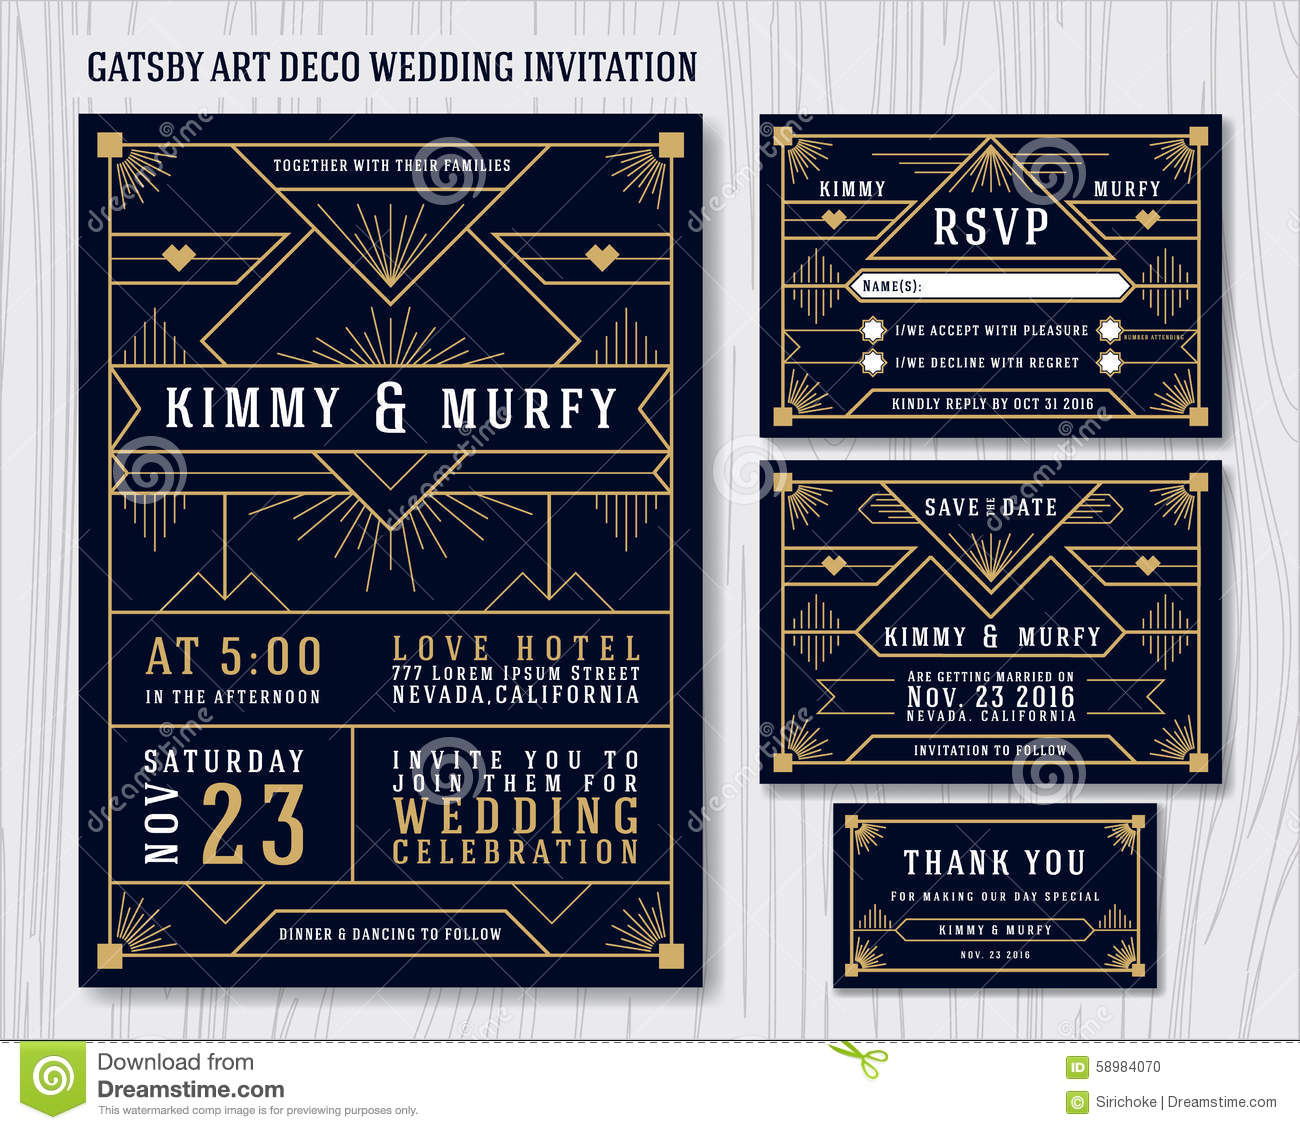 Art deco gatsby stock vector illustration of black orange 43449572 great gatsby art deco wedding invitation design template stock photo toneelgroepblik Gallery